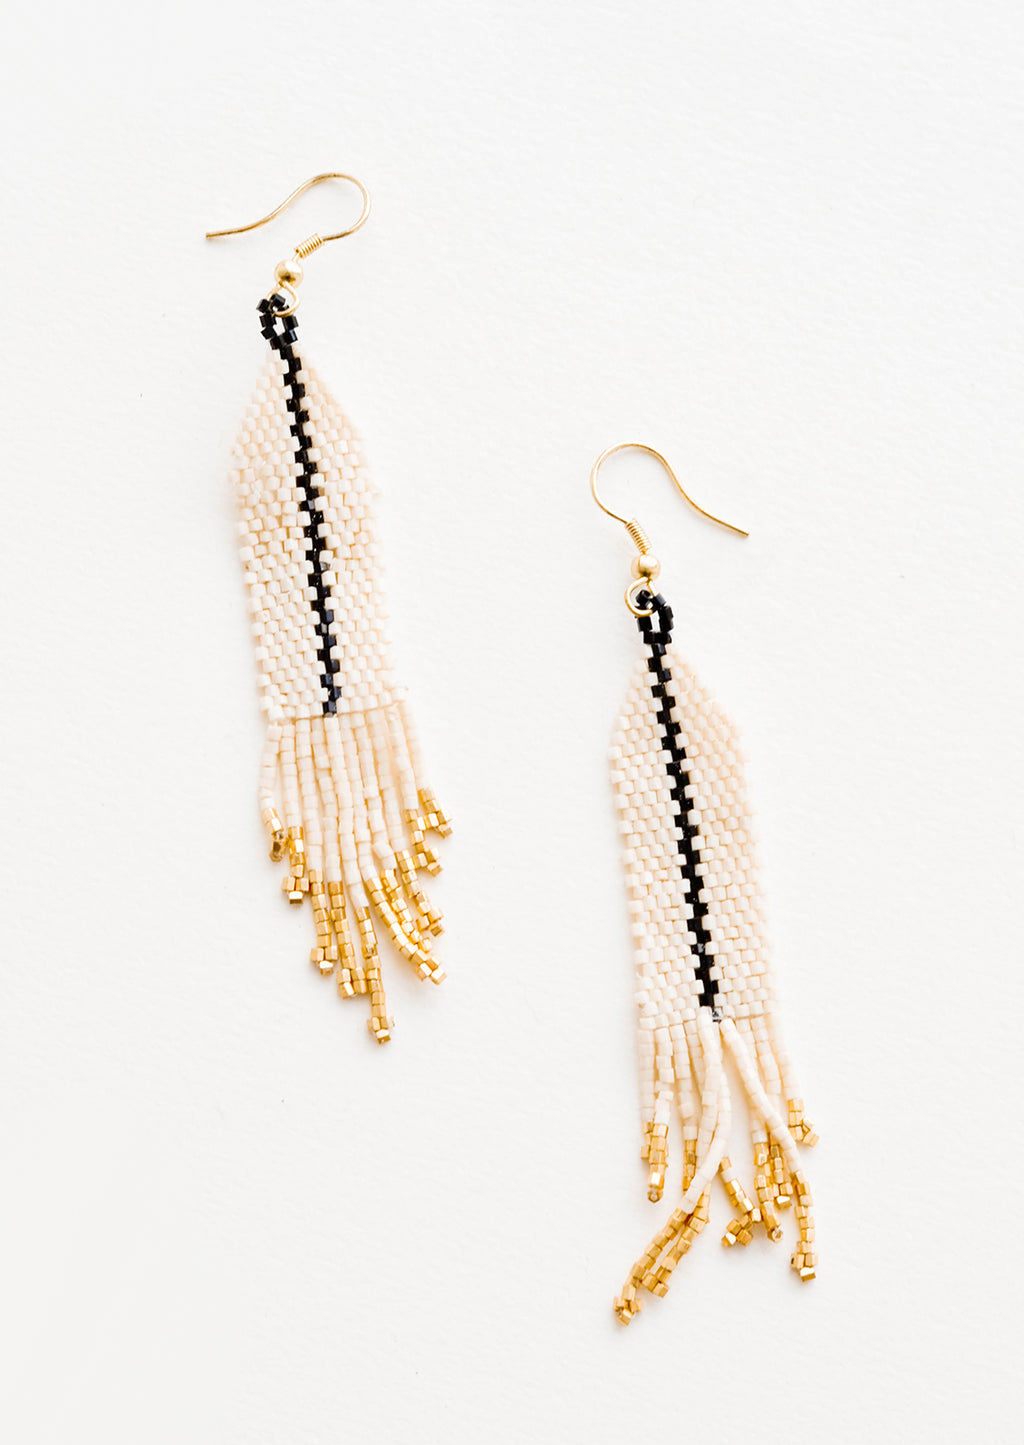 Ivory: Dangling beaded earrings with white beads accented with black bead stripe and gold bead fringe.